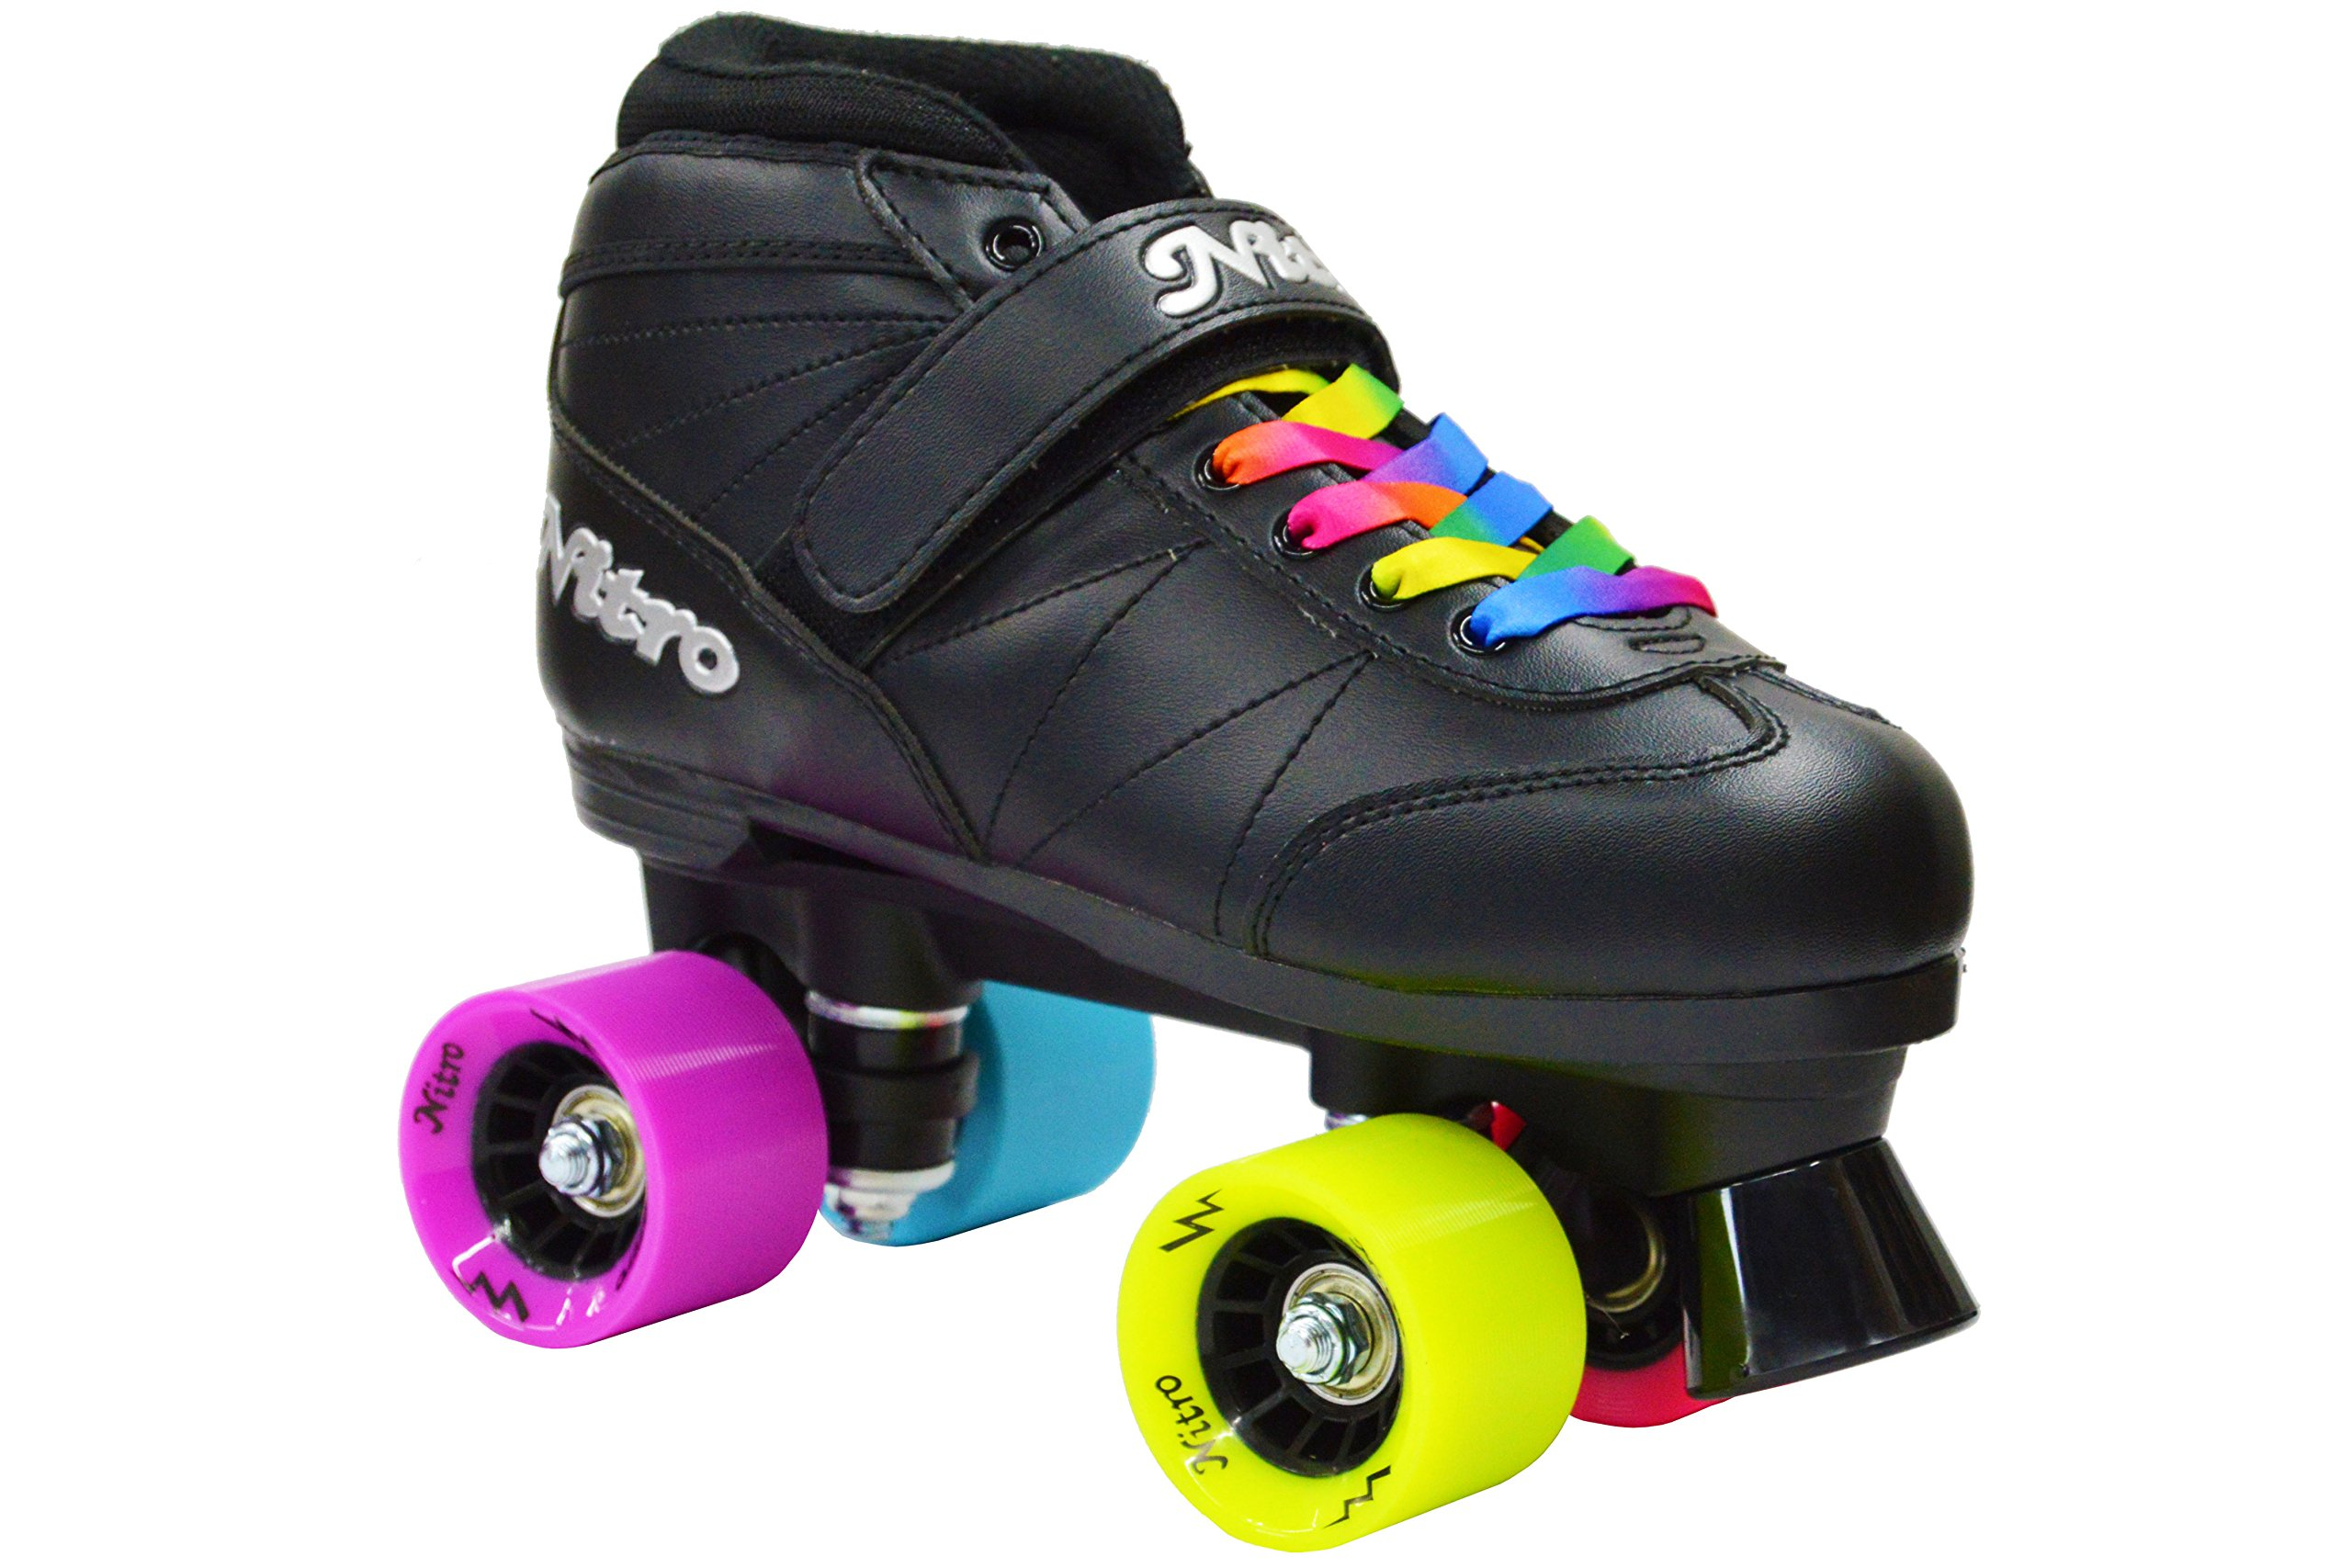 Epic Skates Men's Super Nitro Rainbow, Size 5